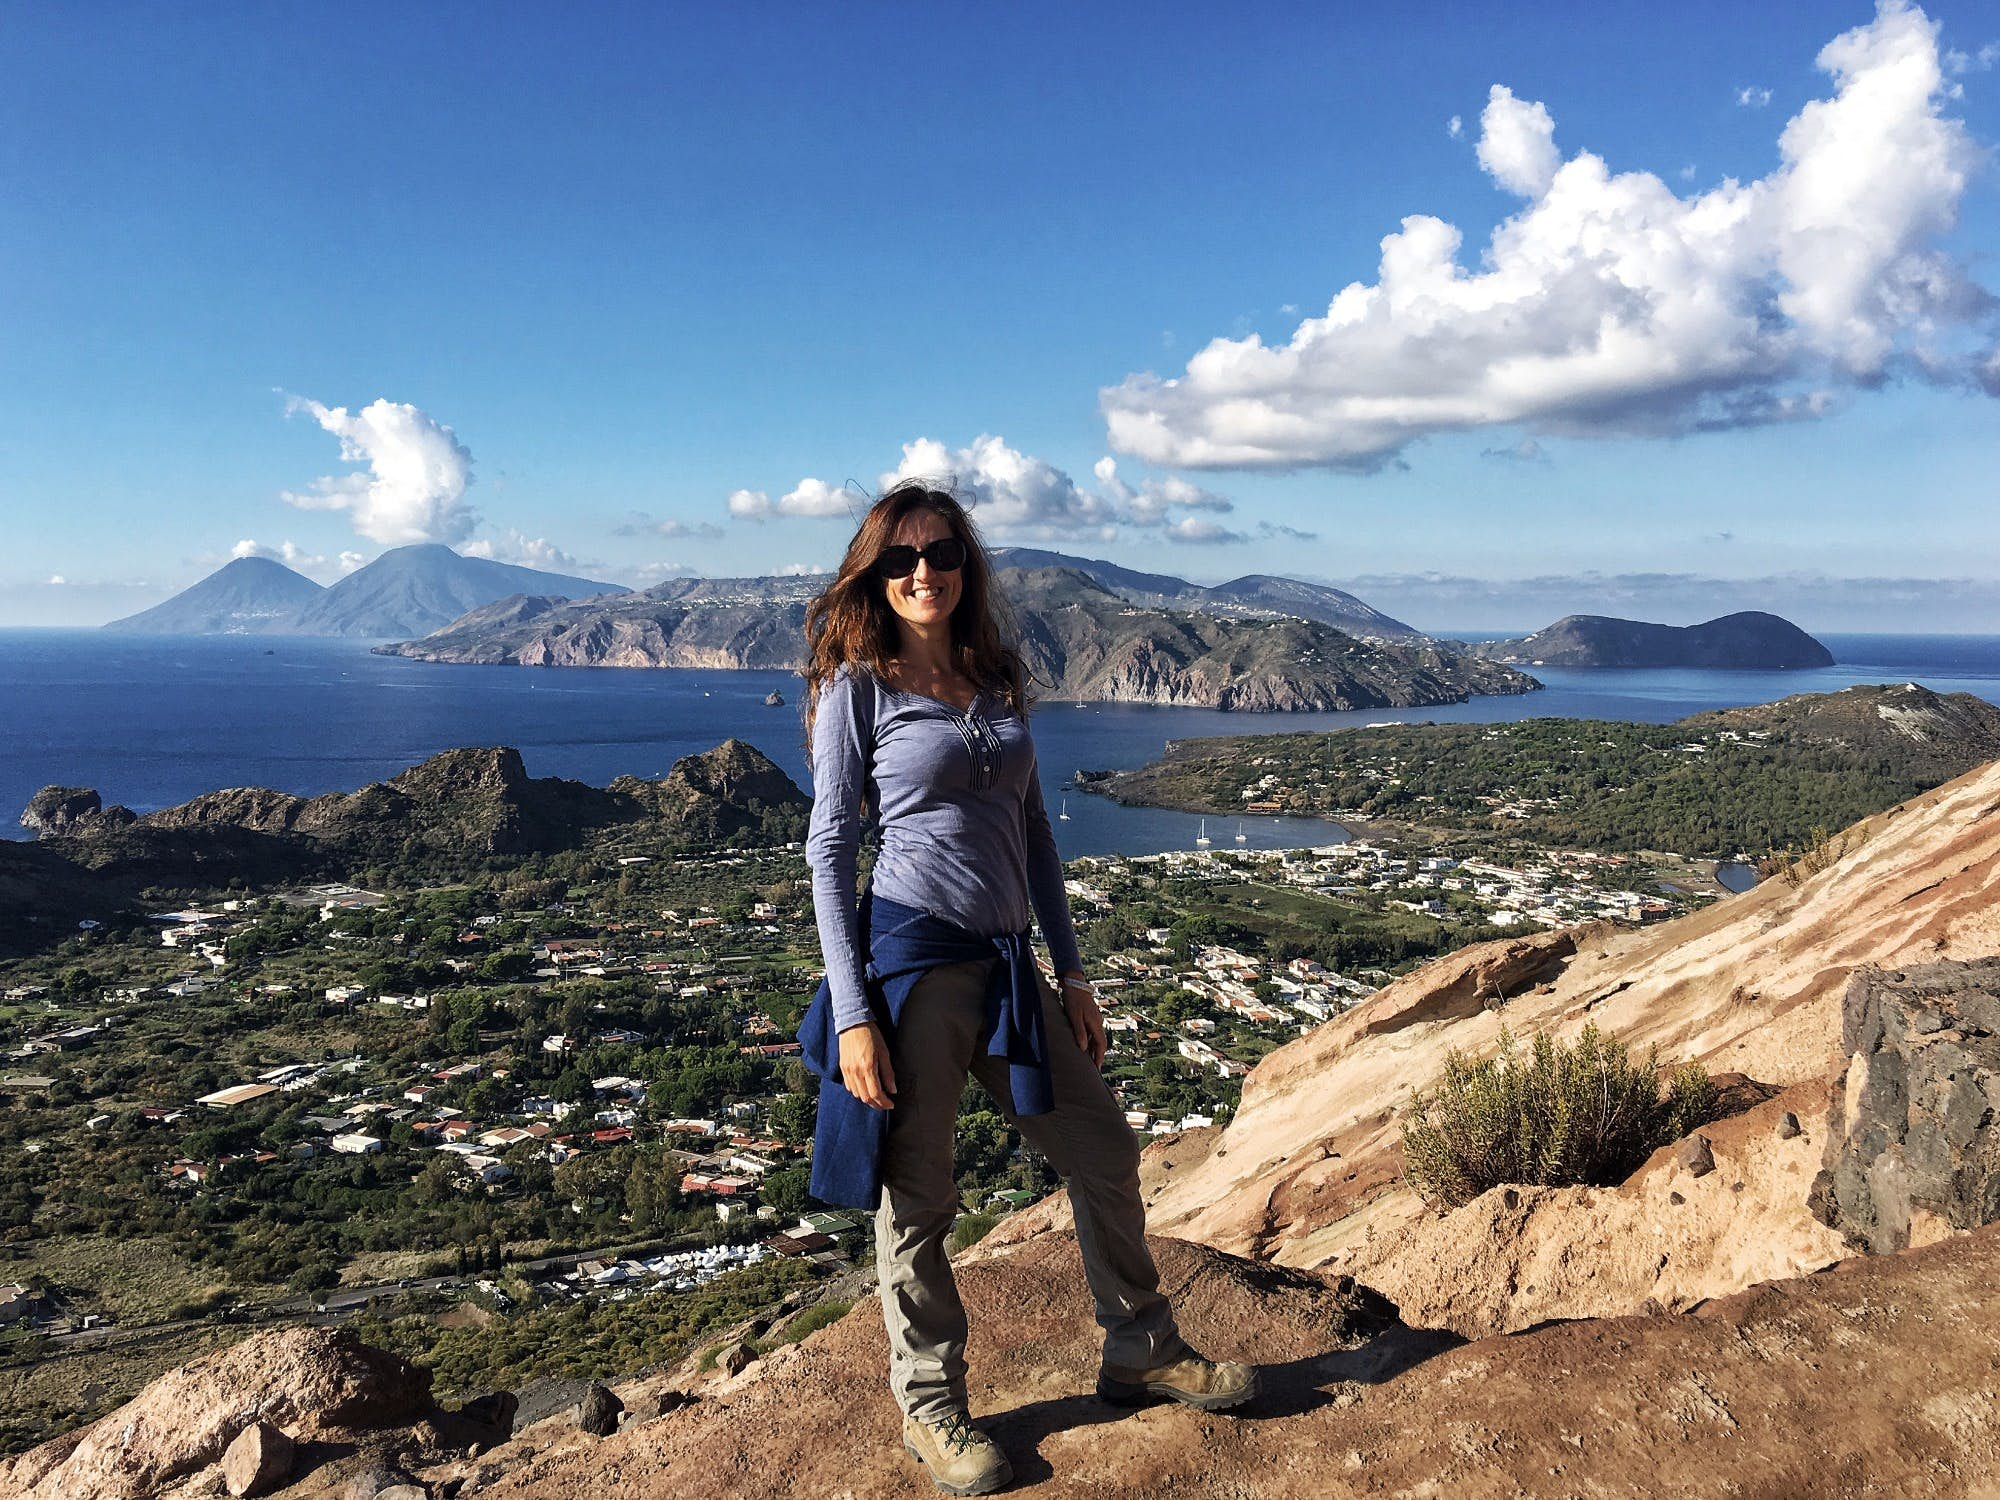 Female Solo Travel What It S Like To Travel Solo In Your 20s 30s 40s 50s And 60s Lonely Planet